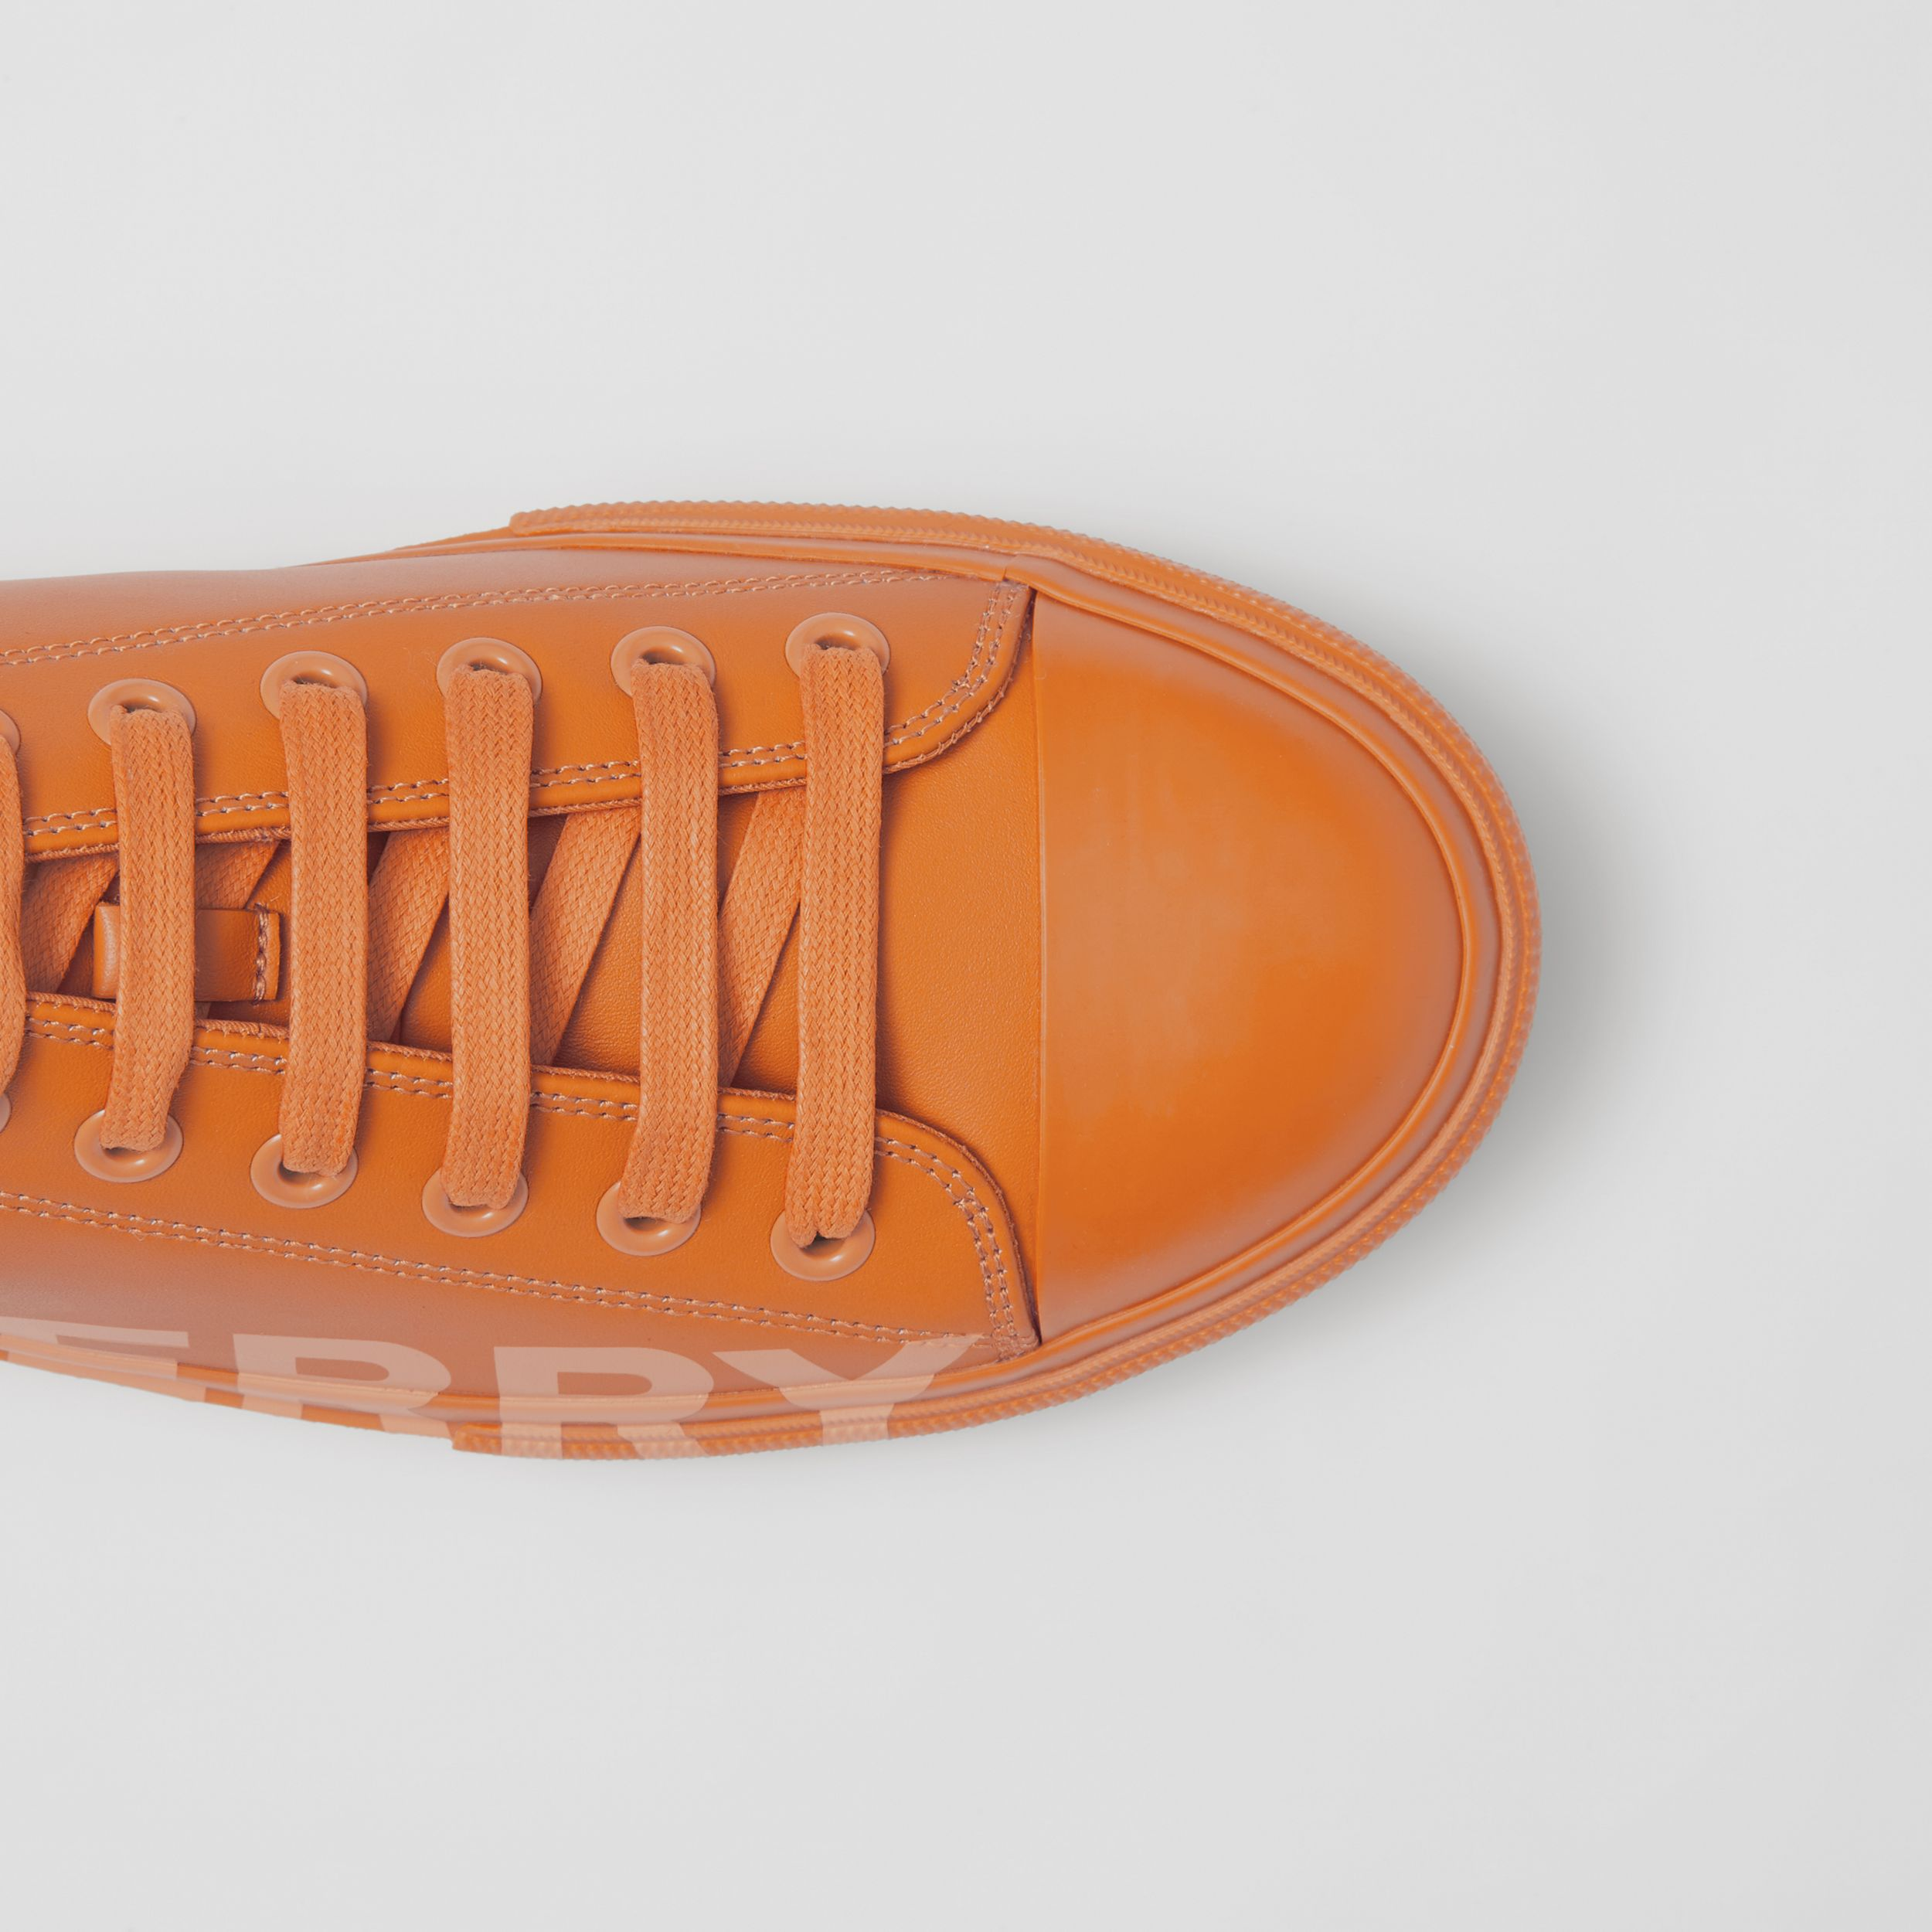 Logo Print Leather Sneakers – Online Exclusive in Deep Orange - Men | Burberry United States - 2